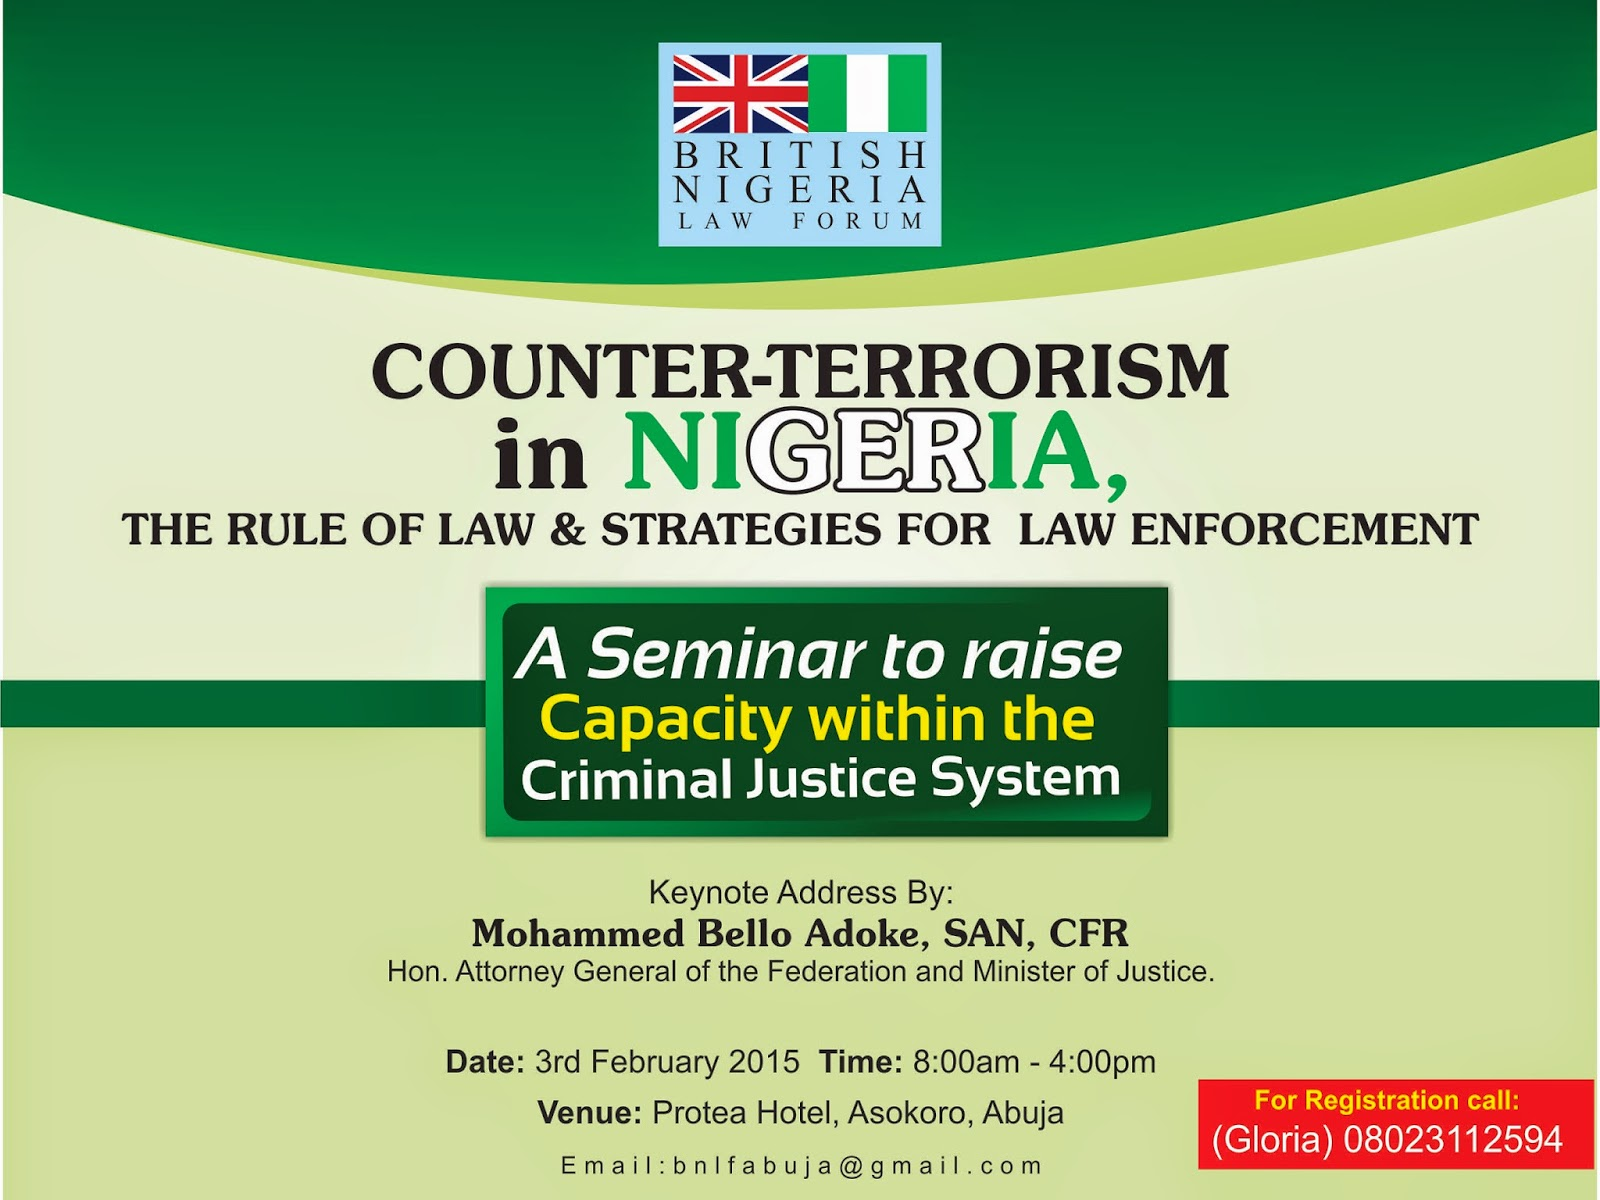 EVENT: – COUNTER-TERRORISM IN NIGERIA, RULE OF LAW & STRATEGIES FOR LAW ENFORCEMENT